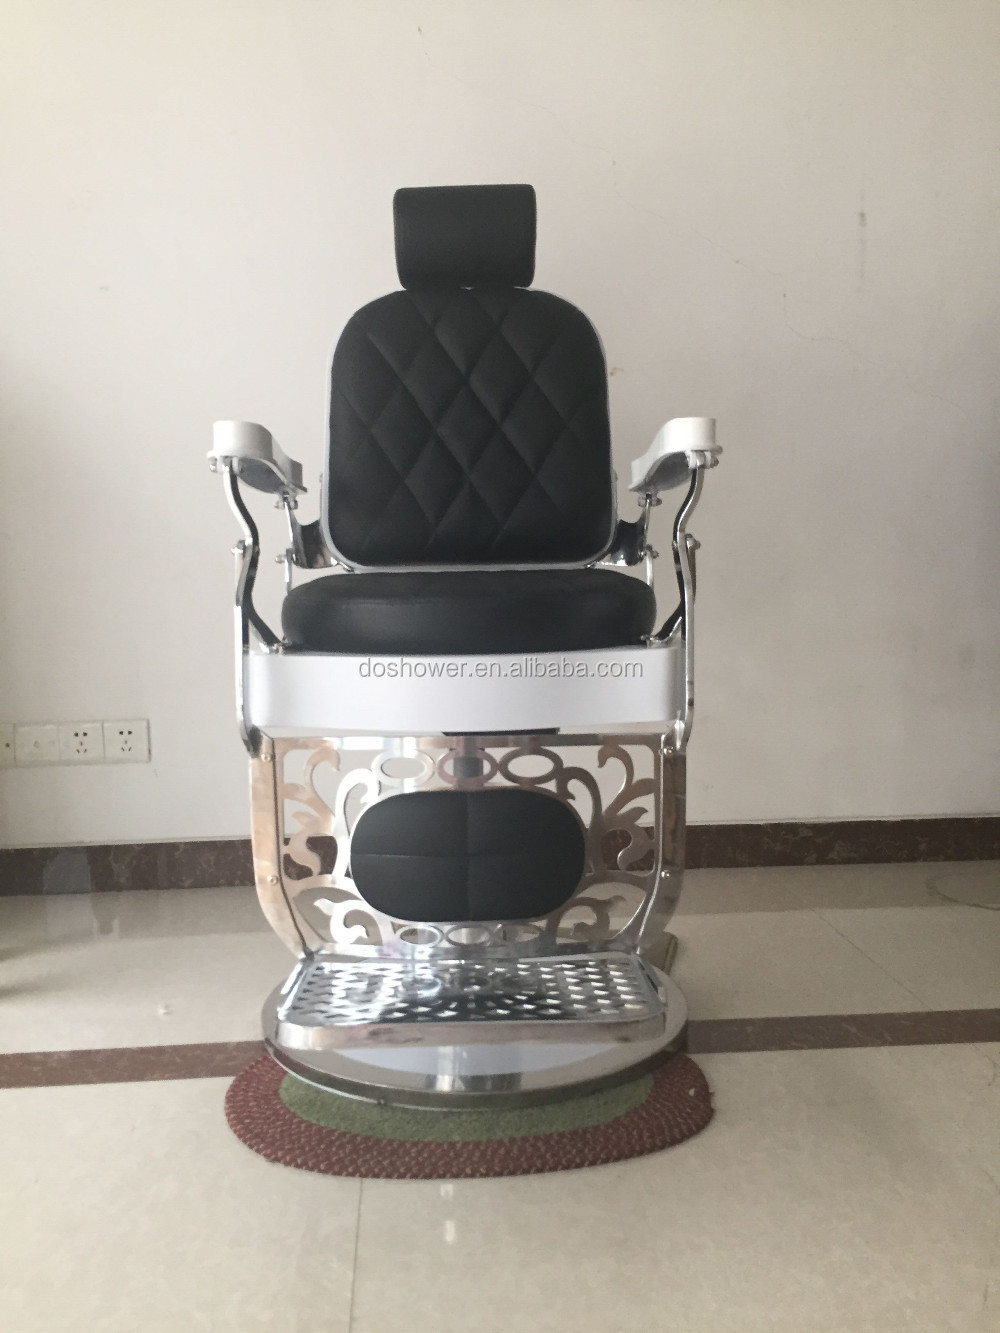 office chair not revolving spandex sashes doshower hydraulic barber parts - buy parts,modern chairs ...